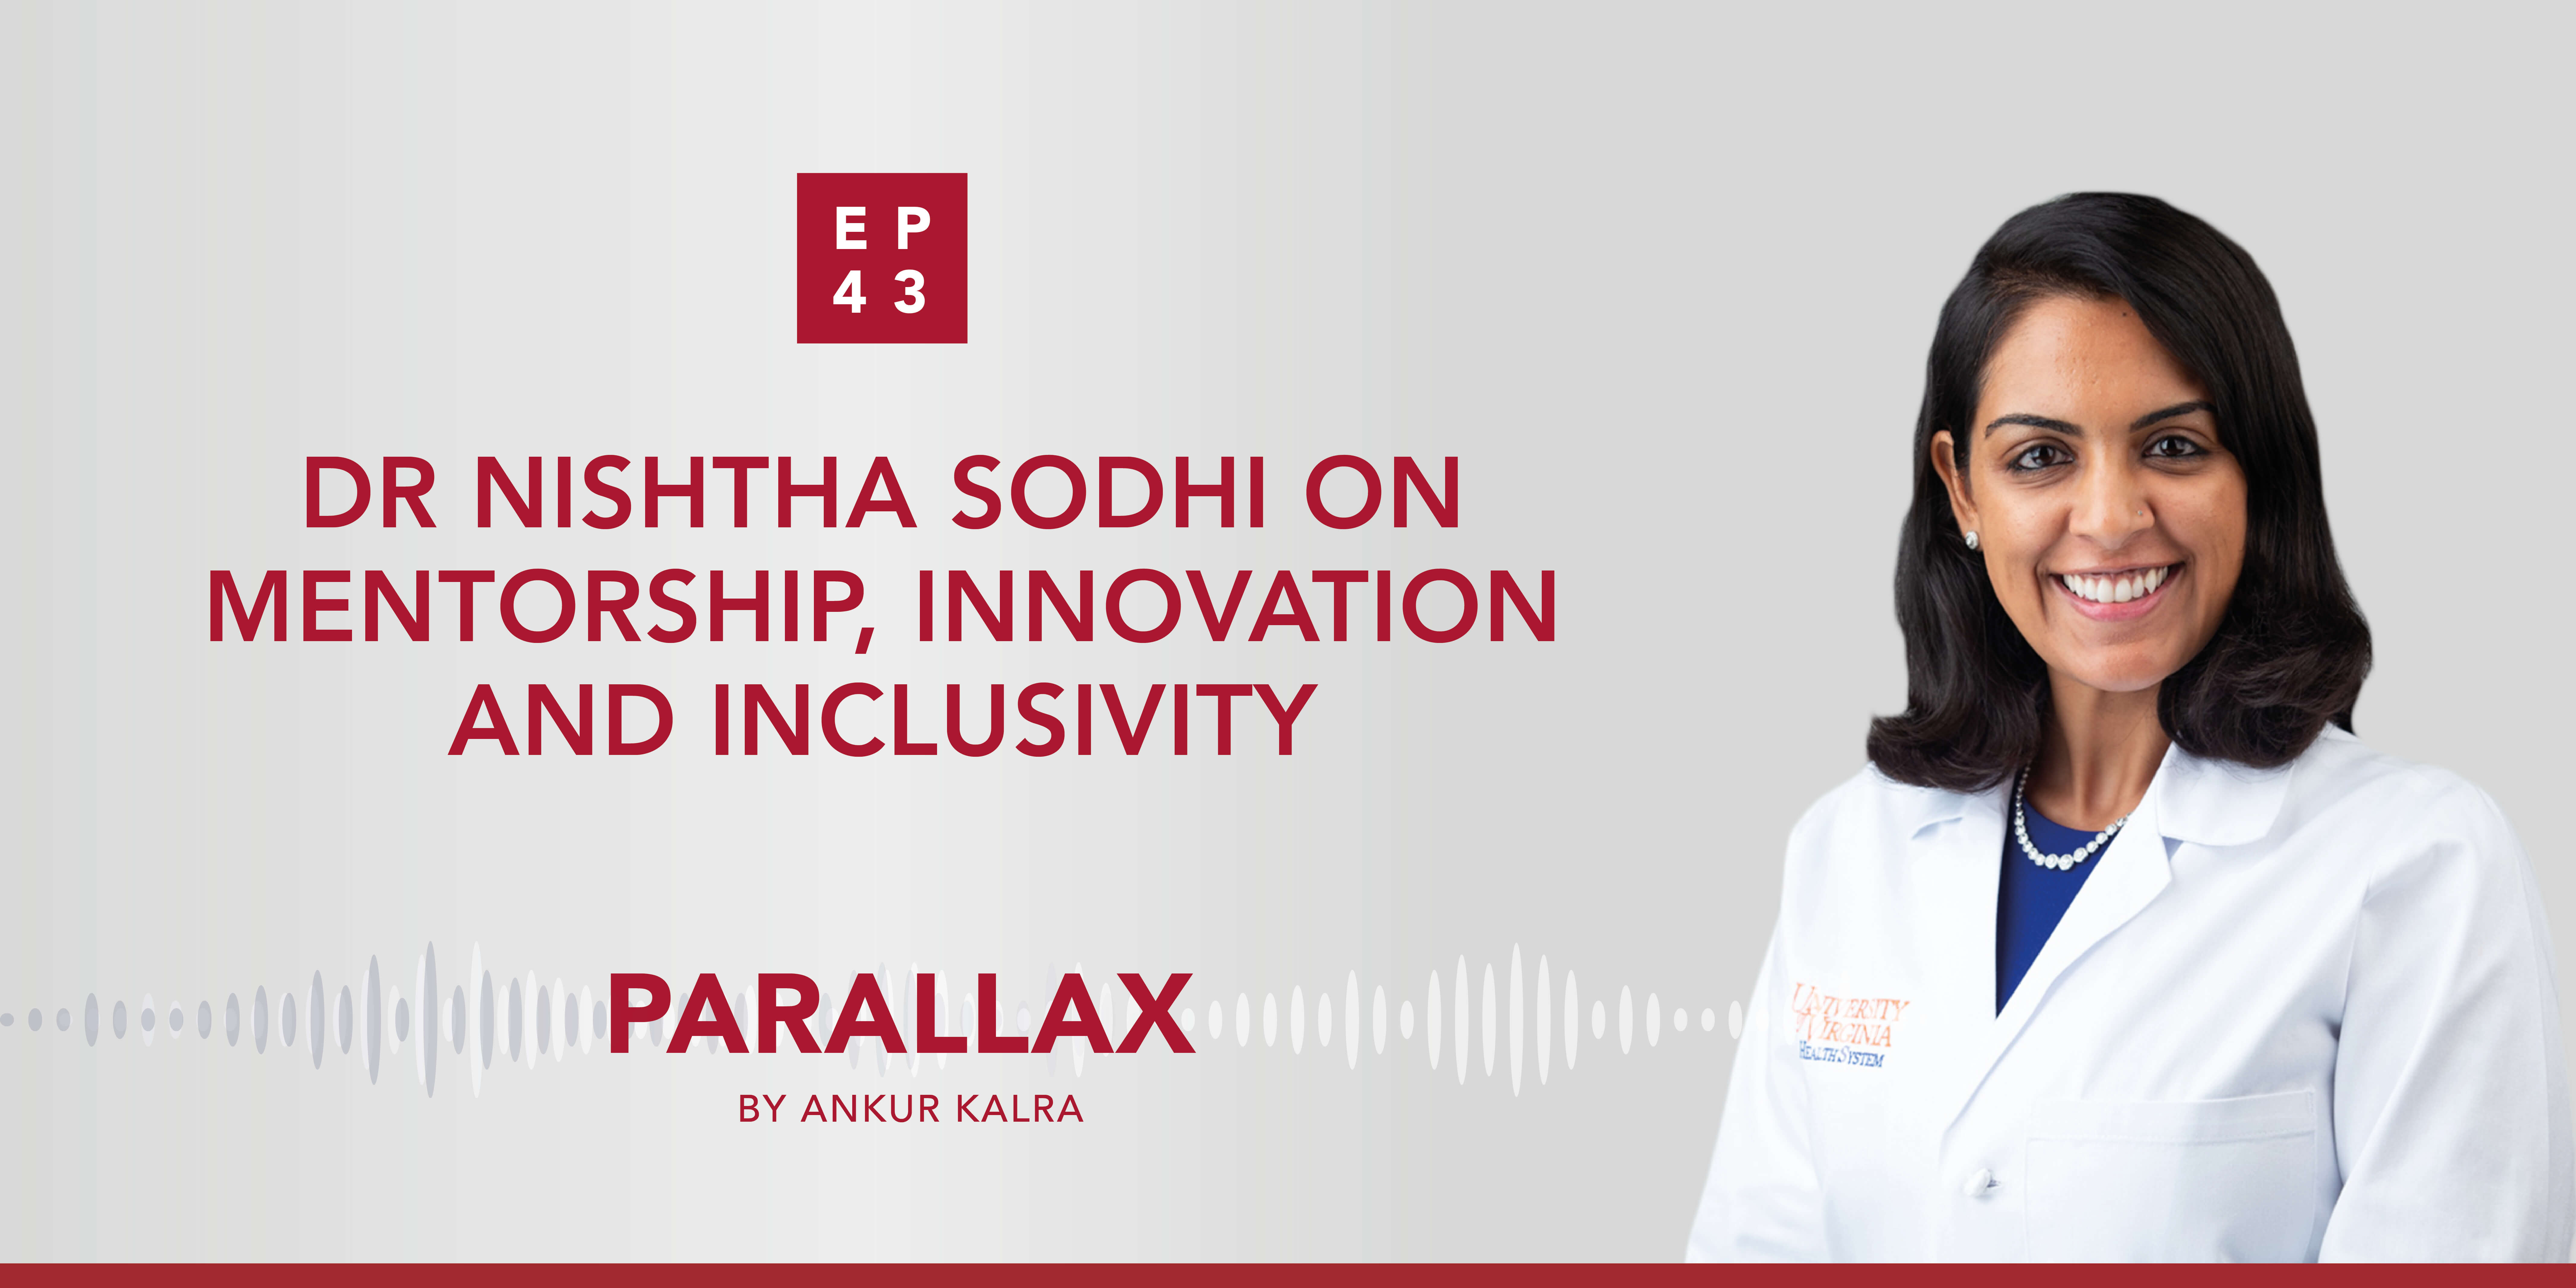 EP 43: Dr Nishtha Sodhi on Mentorship, Innovation and Inclusivity